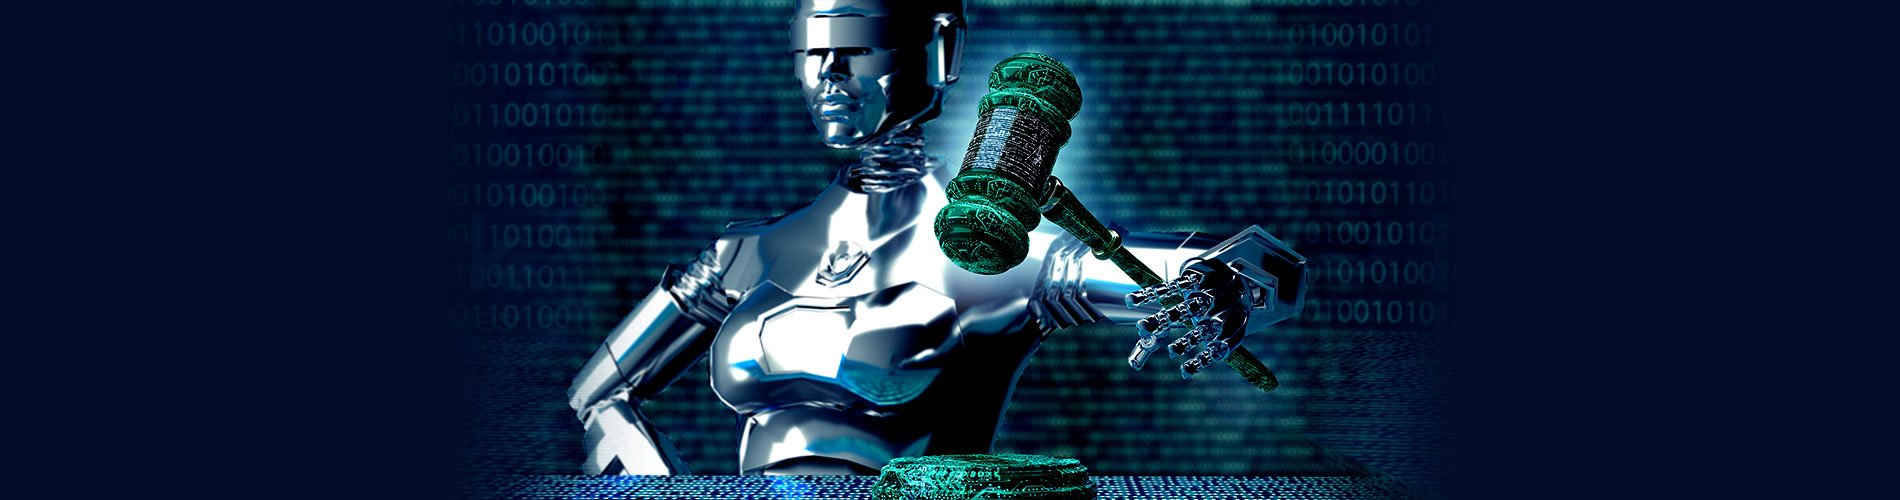 NYDFS-Cyber-Security-Regulations---Made-Easy-(Part-1).jpg